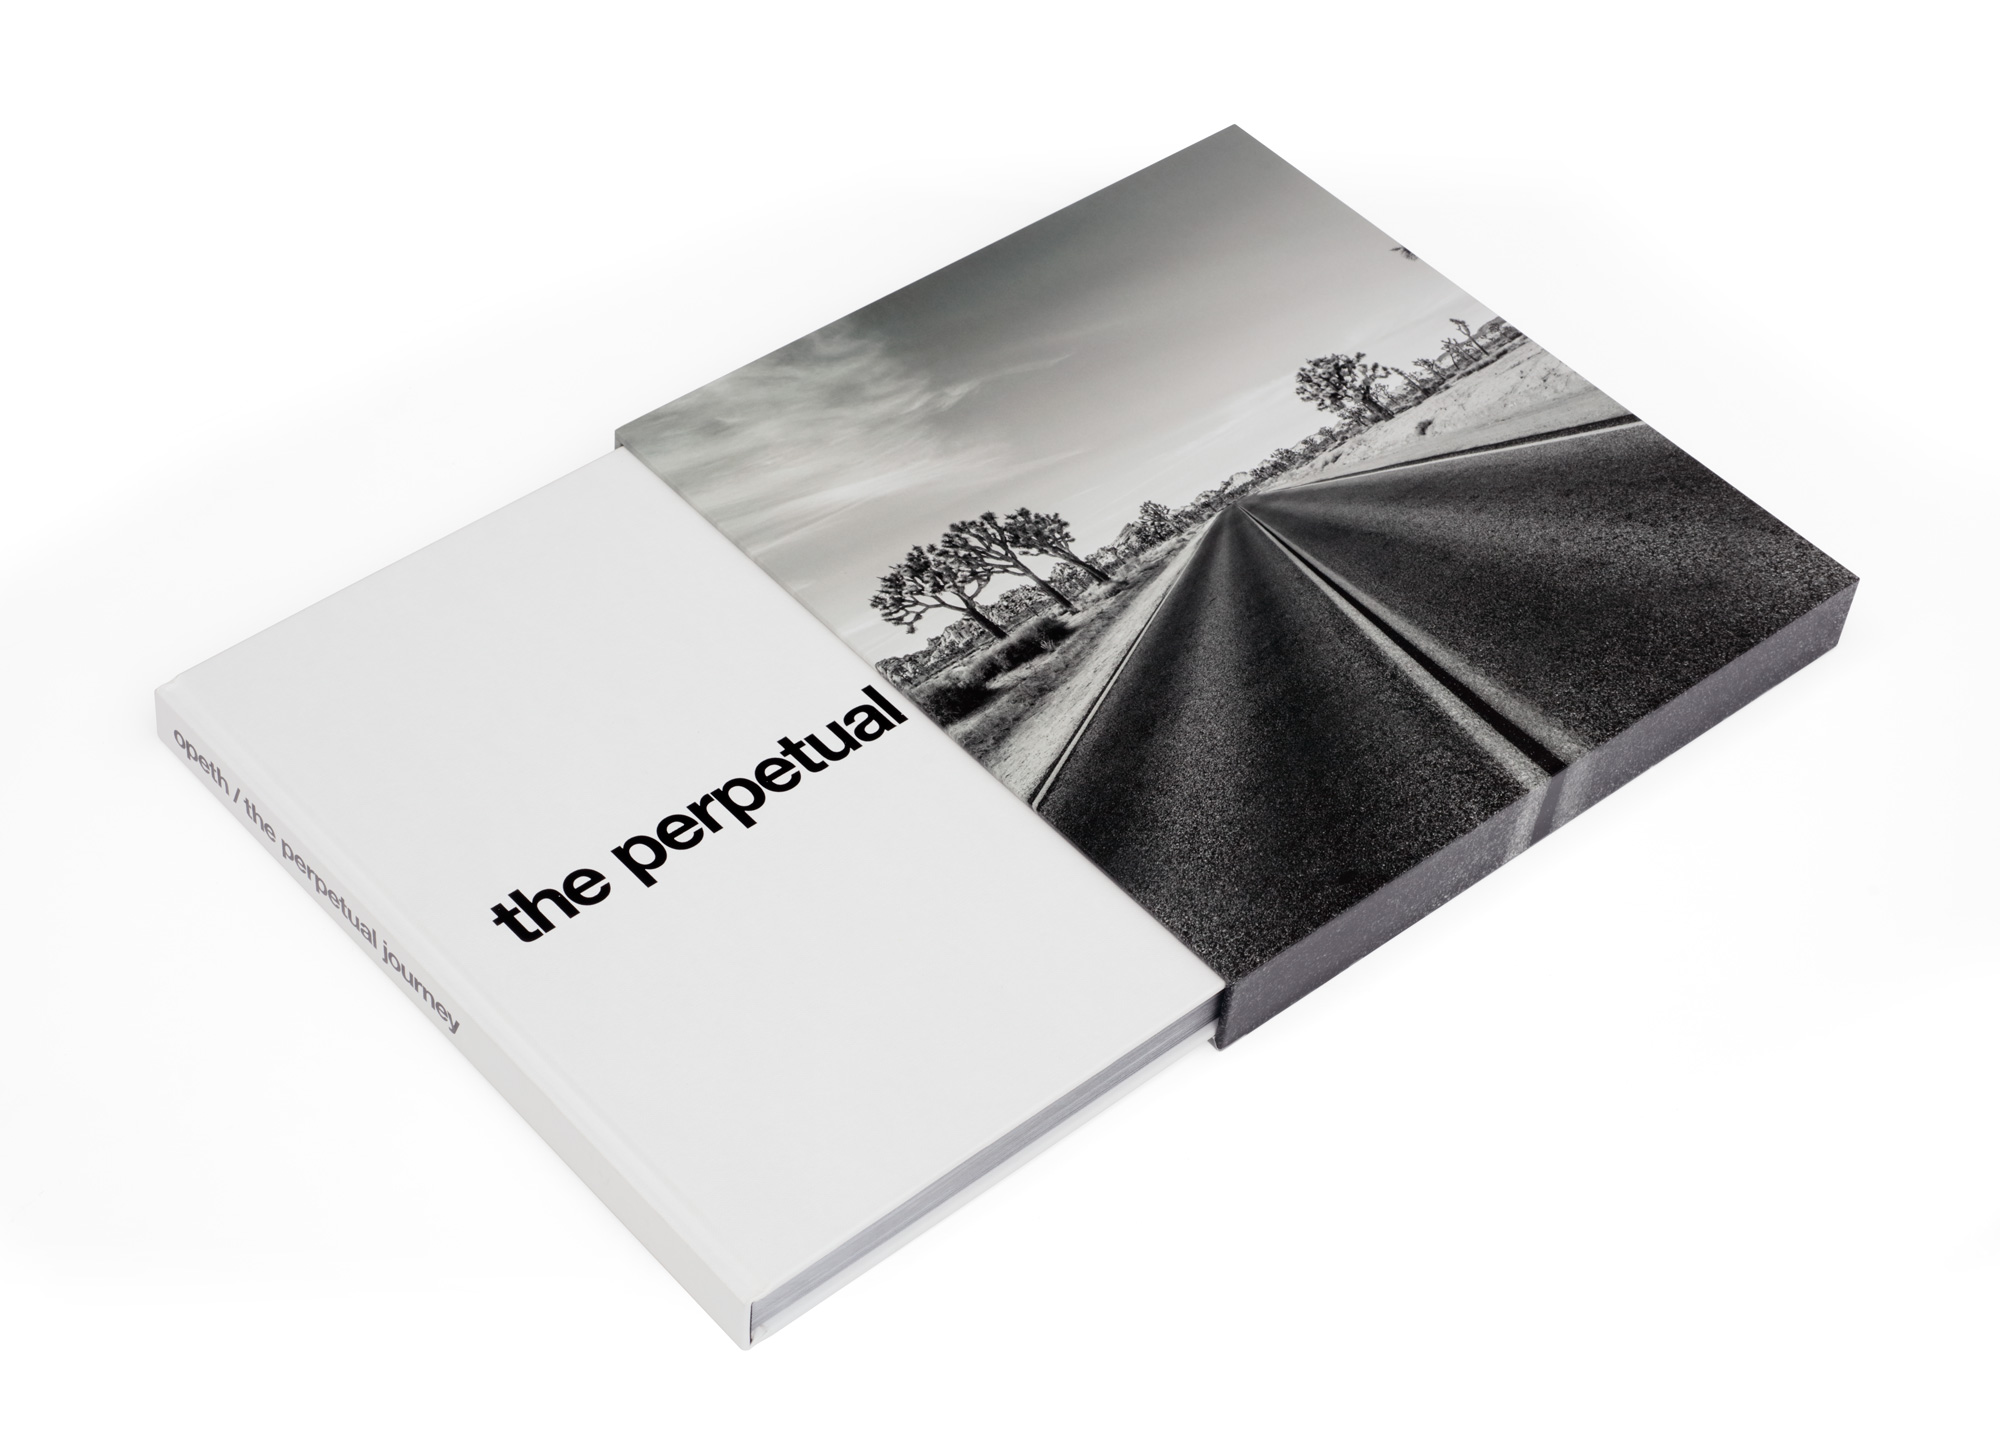 Opeth - The Perpetual Journey Photo Book (Ltd Edition Version) - Opeth